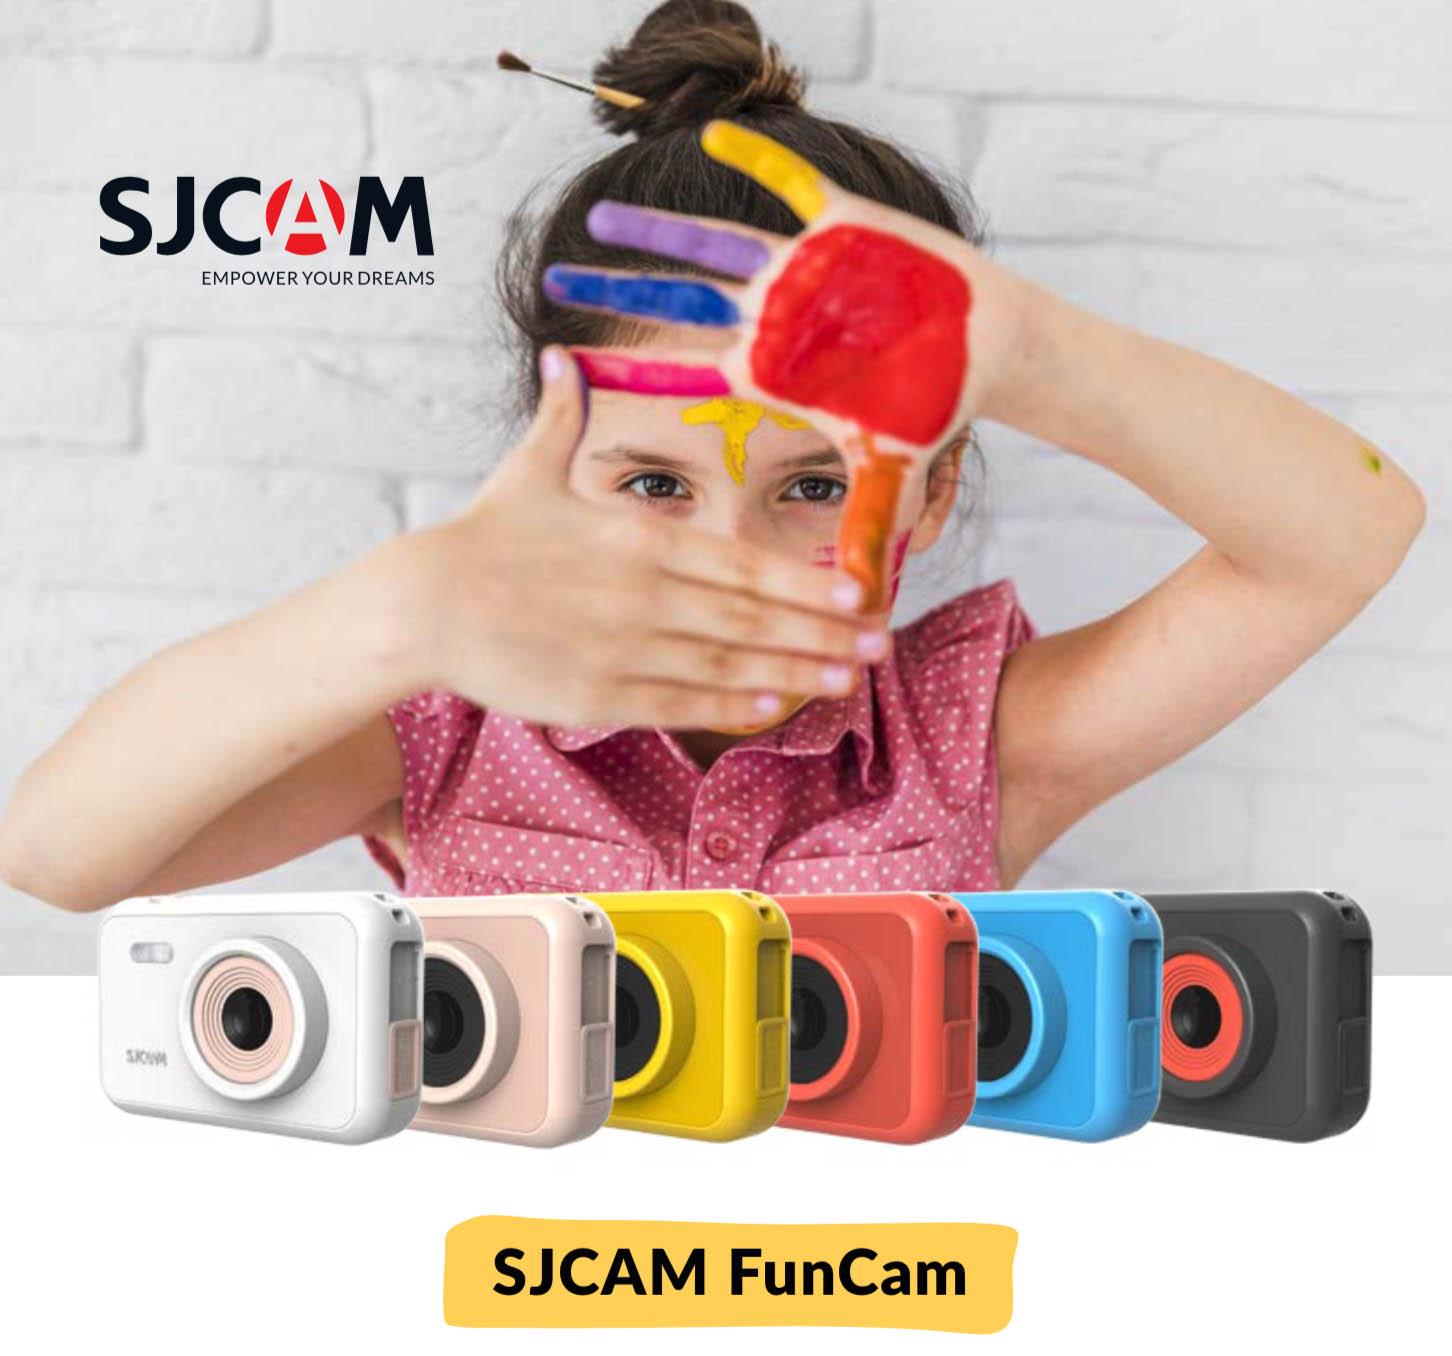 First Digital Camera from SJCAM dedicated for Kids